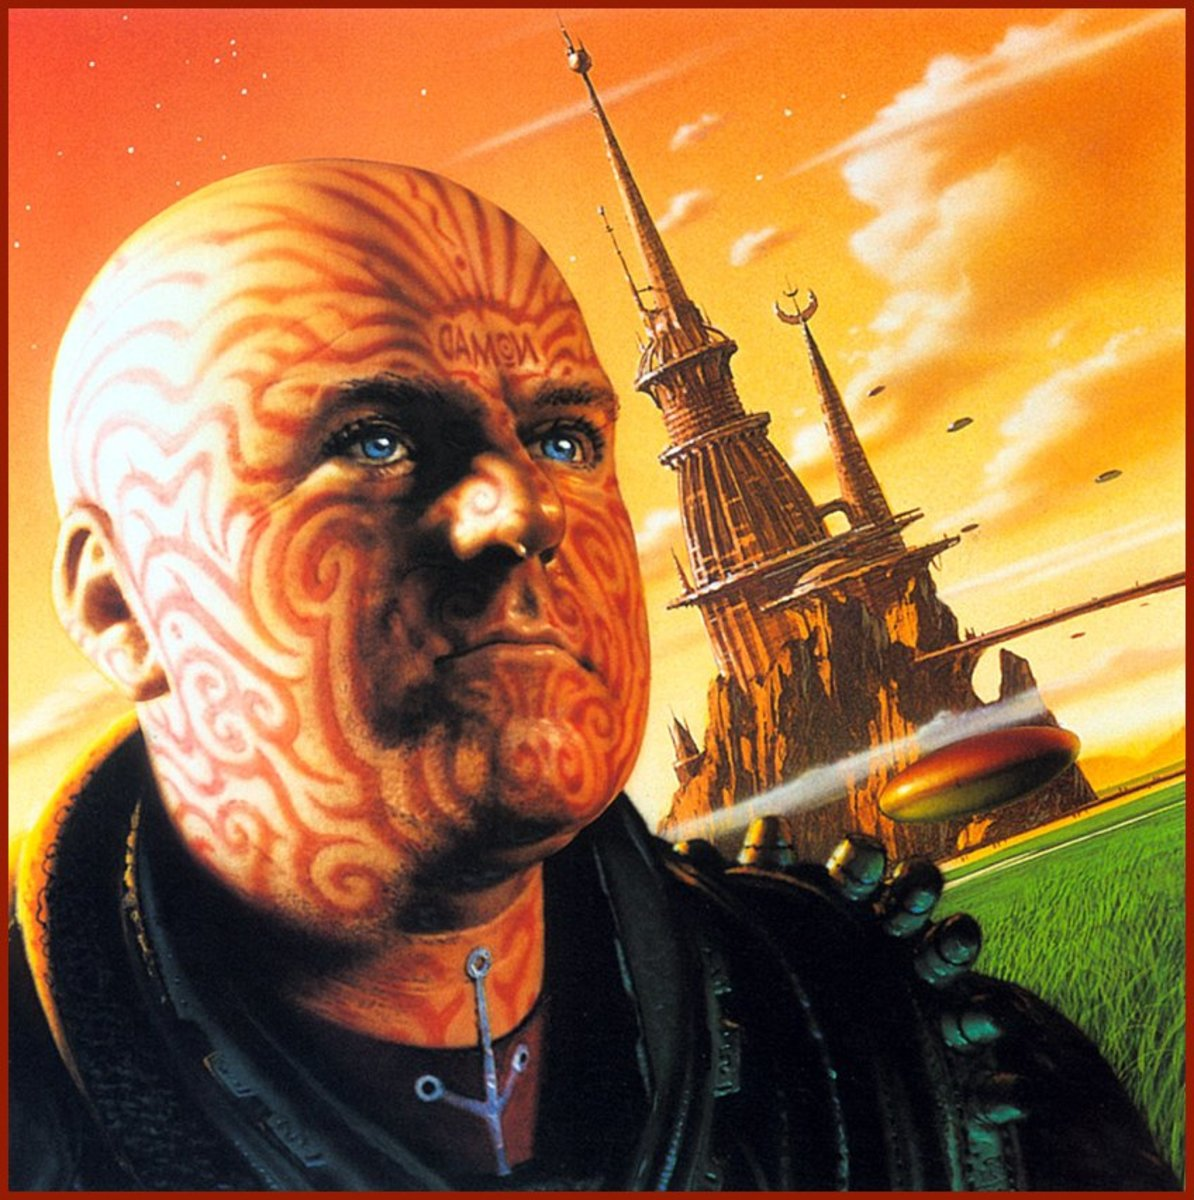 Guille Foyle is one of the most memorable characters from the classic sci-fi novel Stars My Destination .